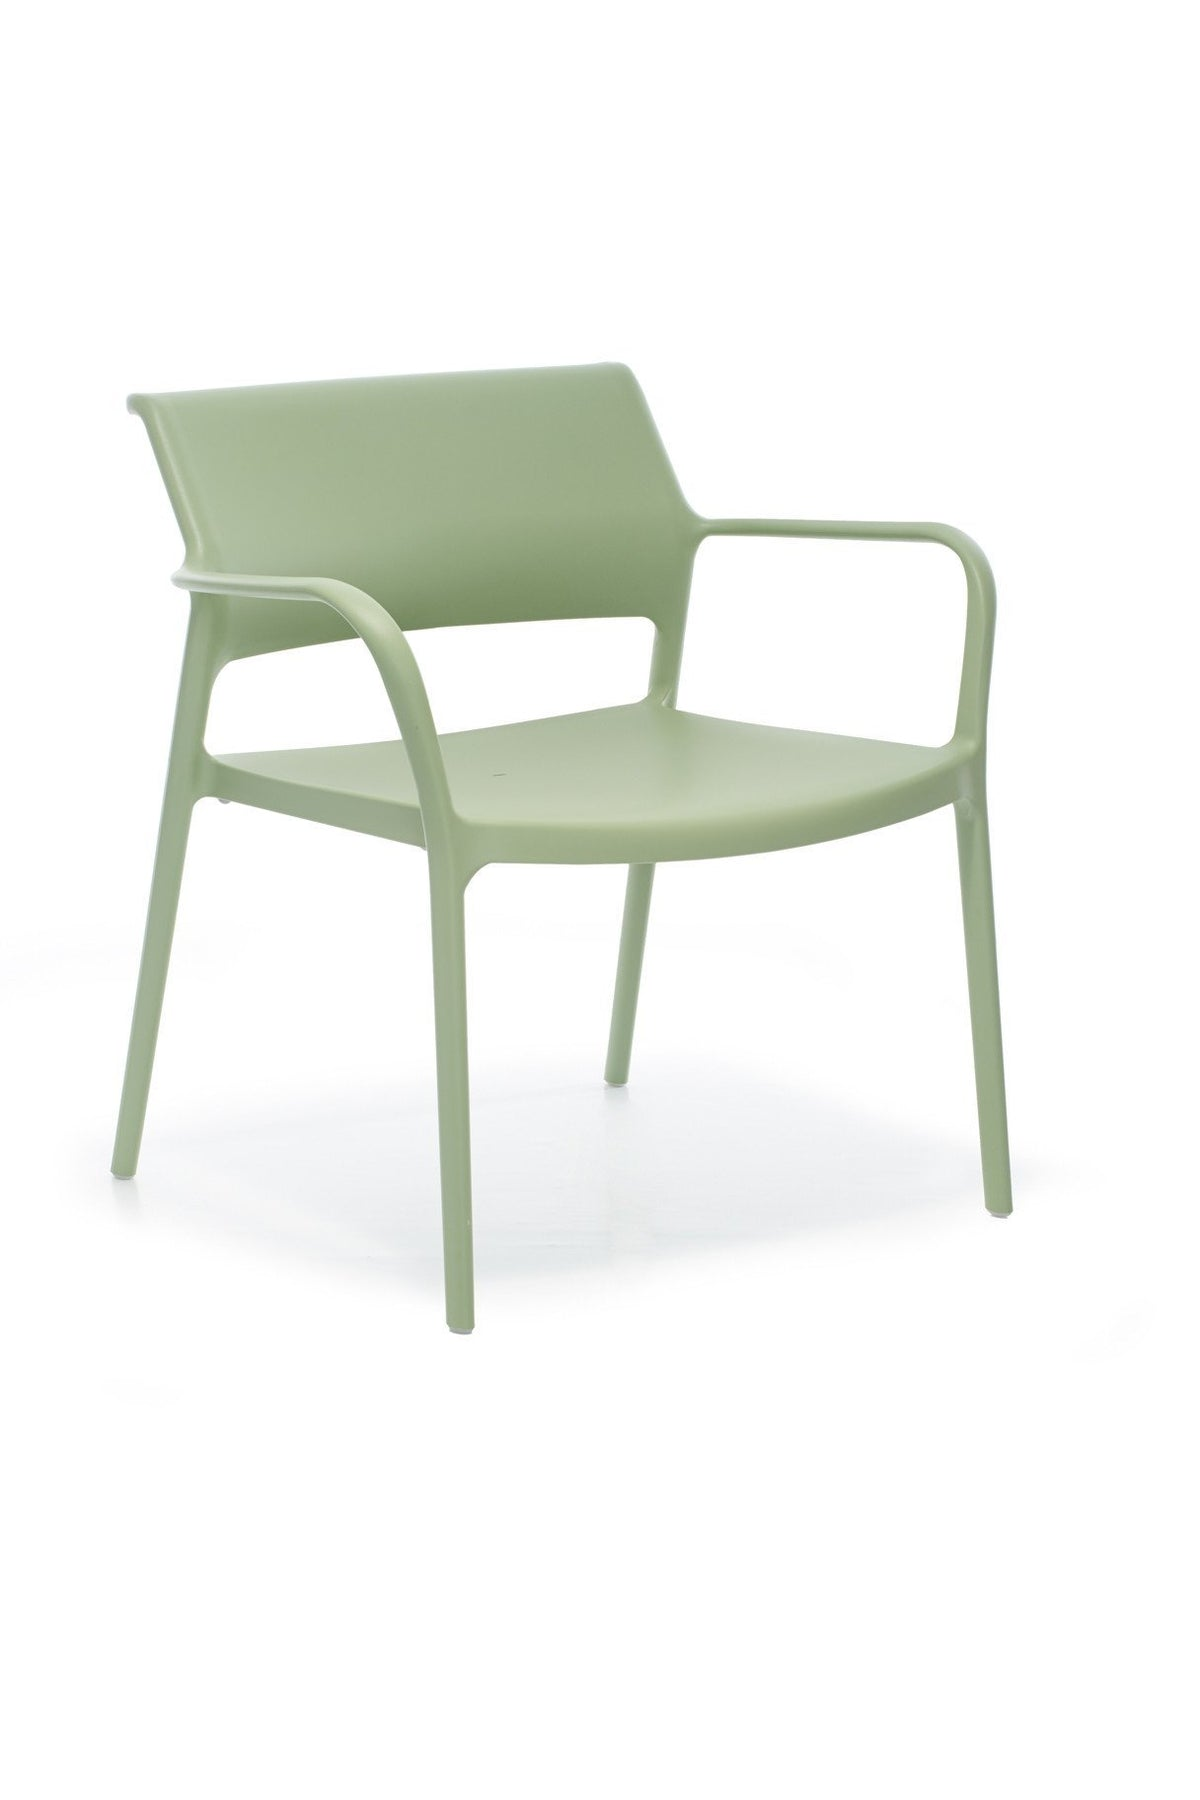 Ara 316 Lounge Chair-Pedrali-Contract Furniture Store